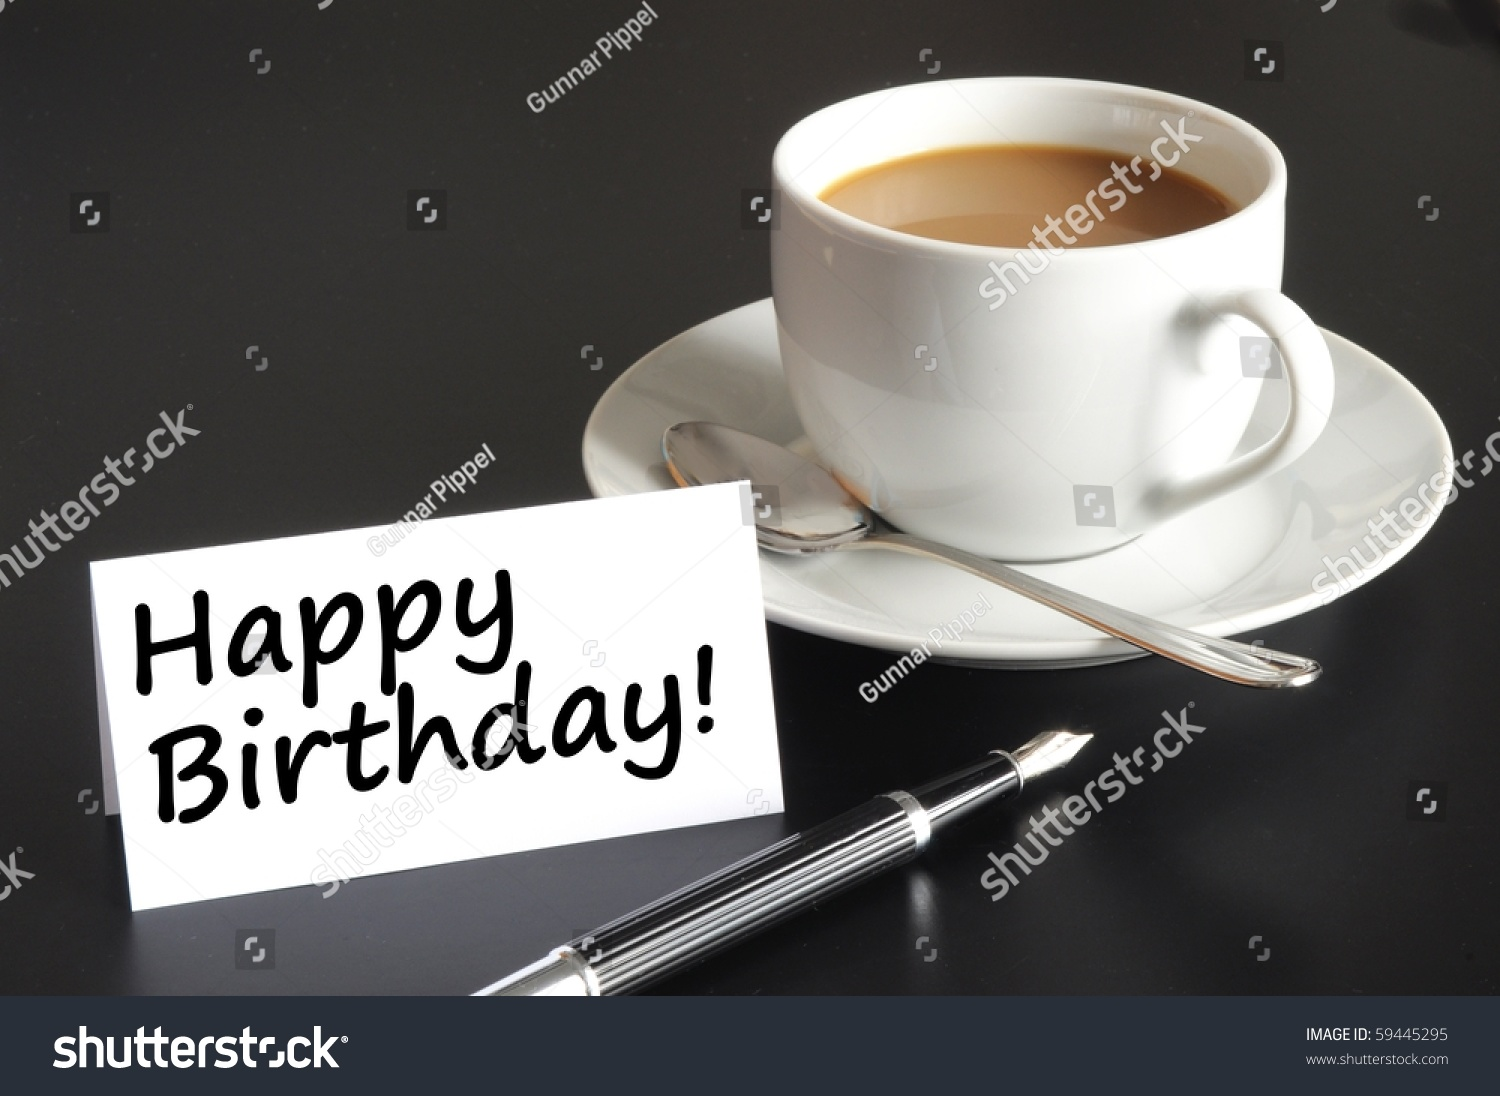 happy birthday coffee images ; stock-photo-happy-birthday-greeting-card-with-cup-of-coffee-on-black-59445295